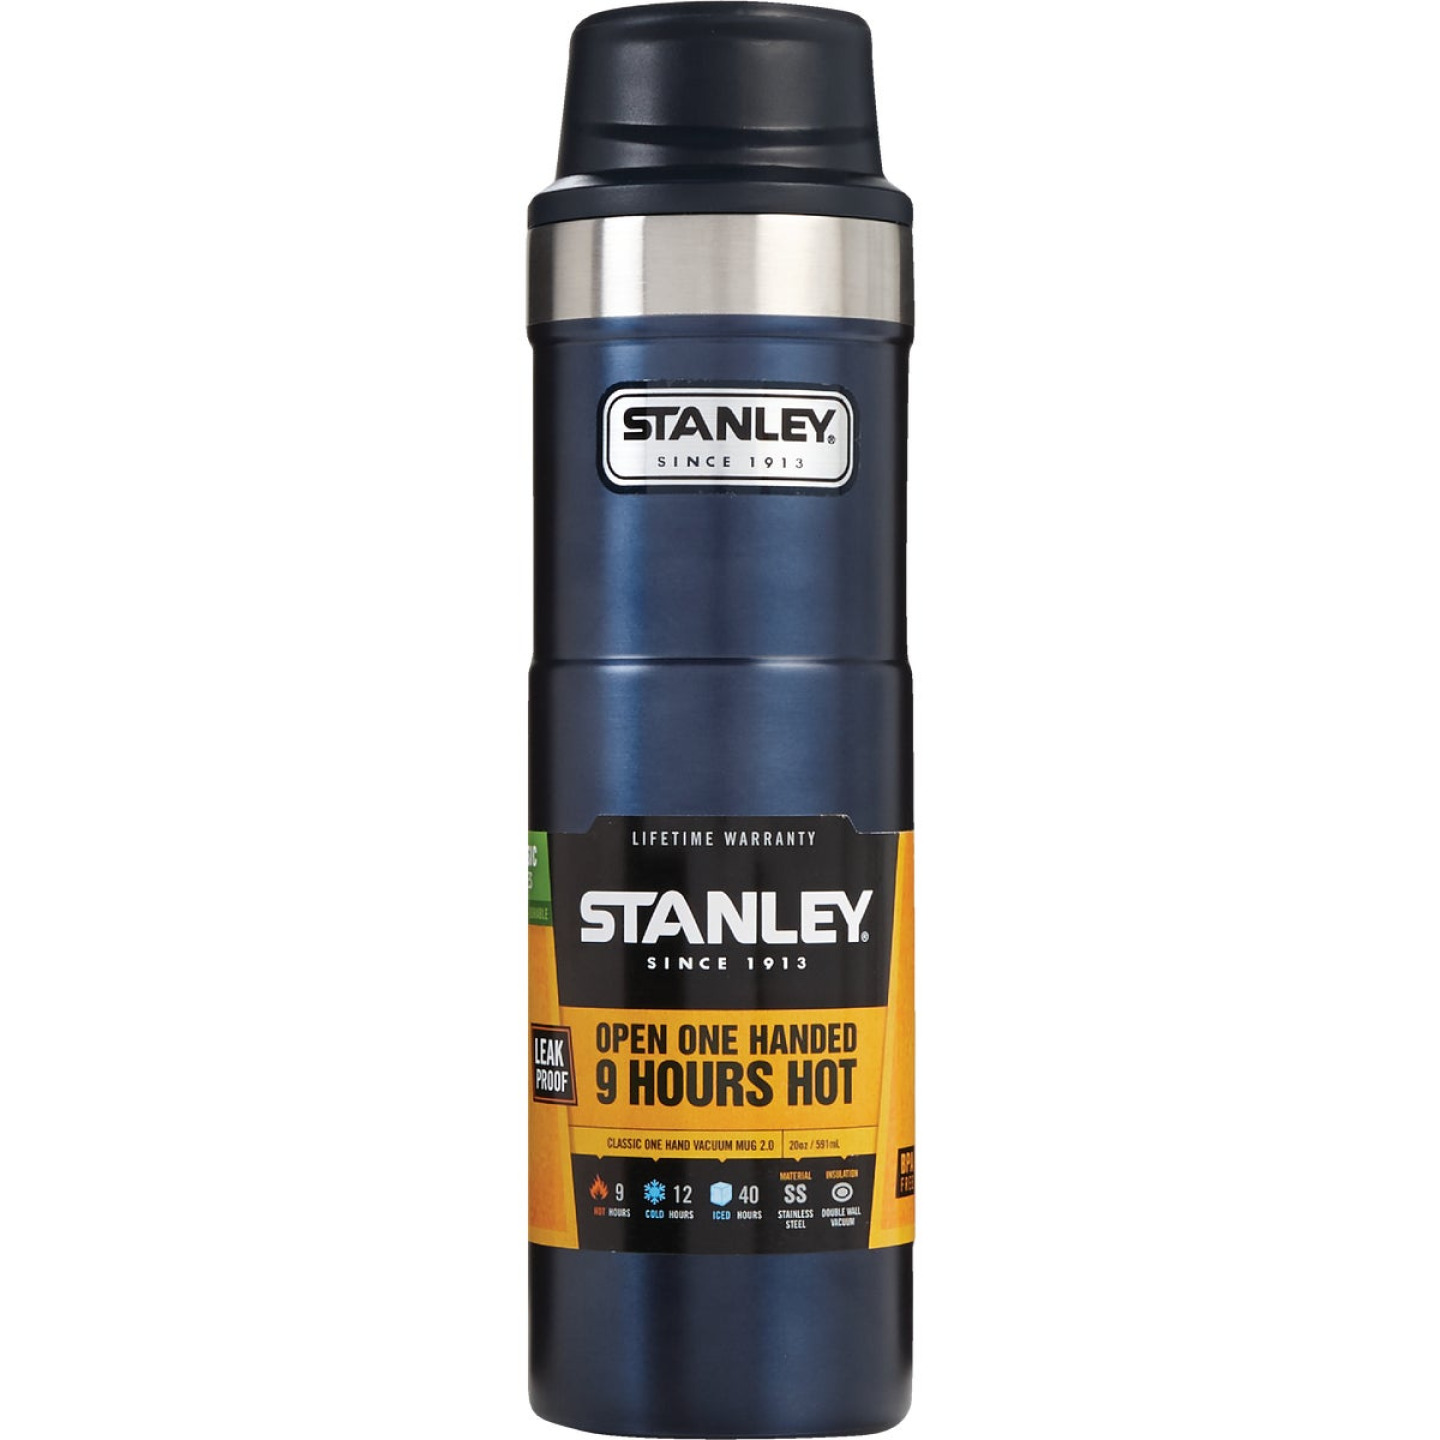 Stanley 20 Oz. Nightfall Blue Trigger Action Insulated Tumbler Image 1